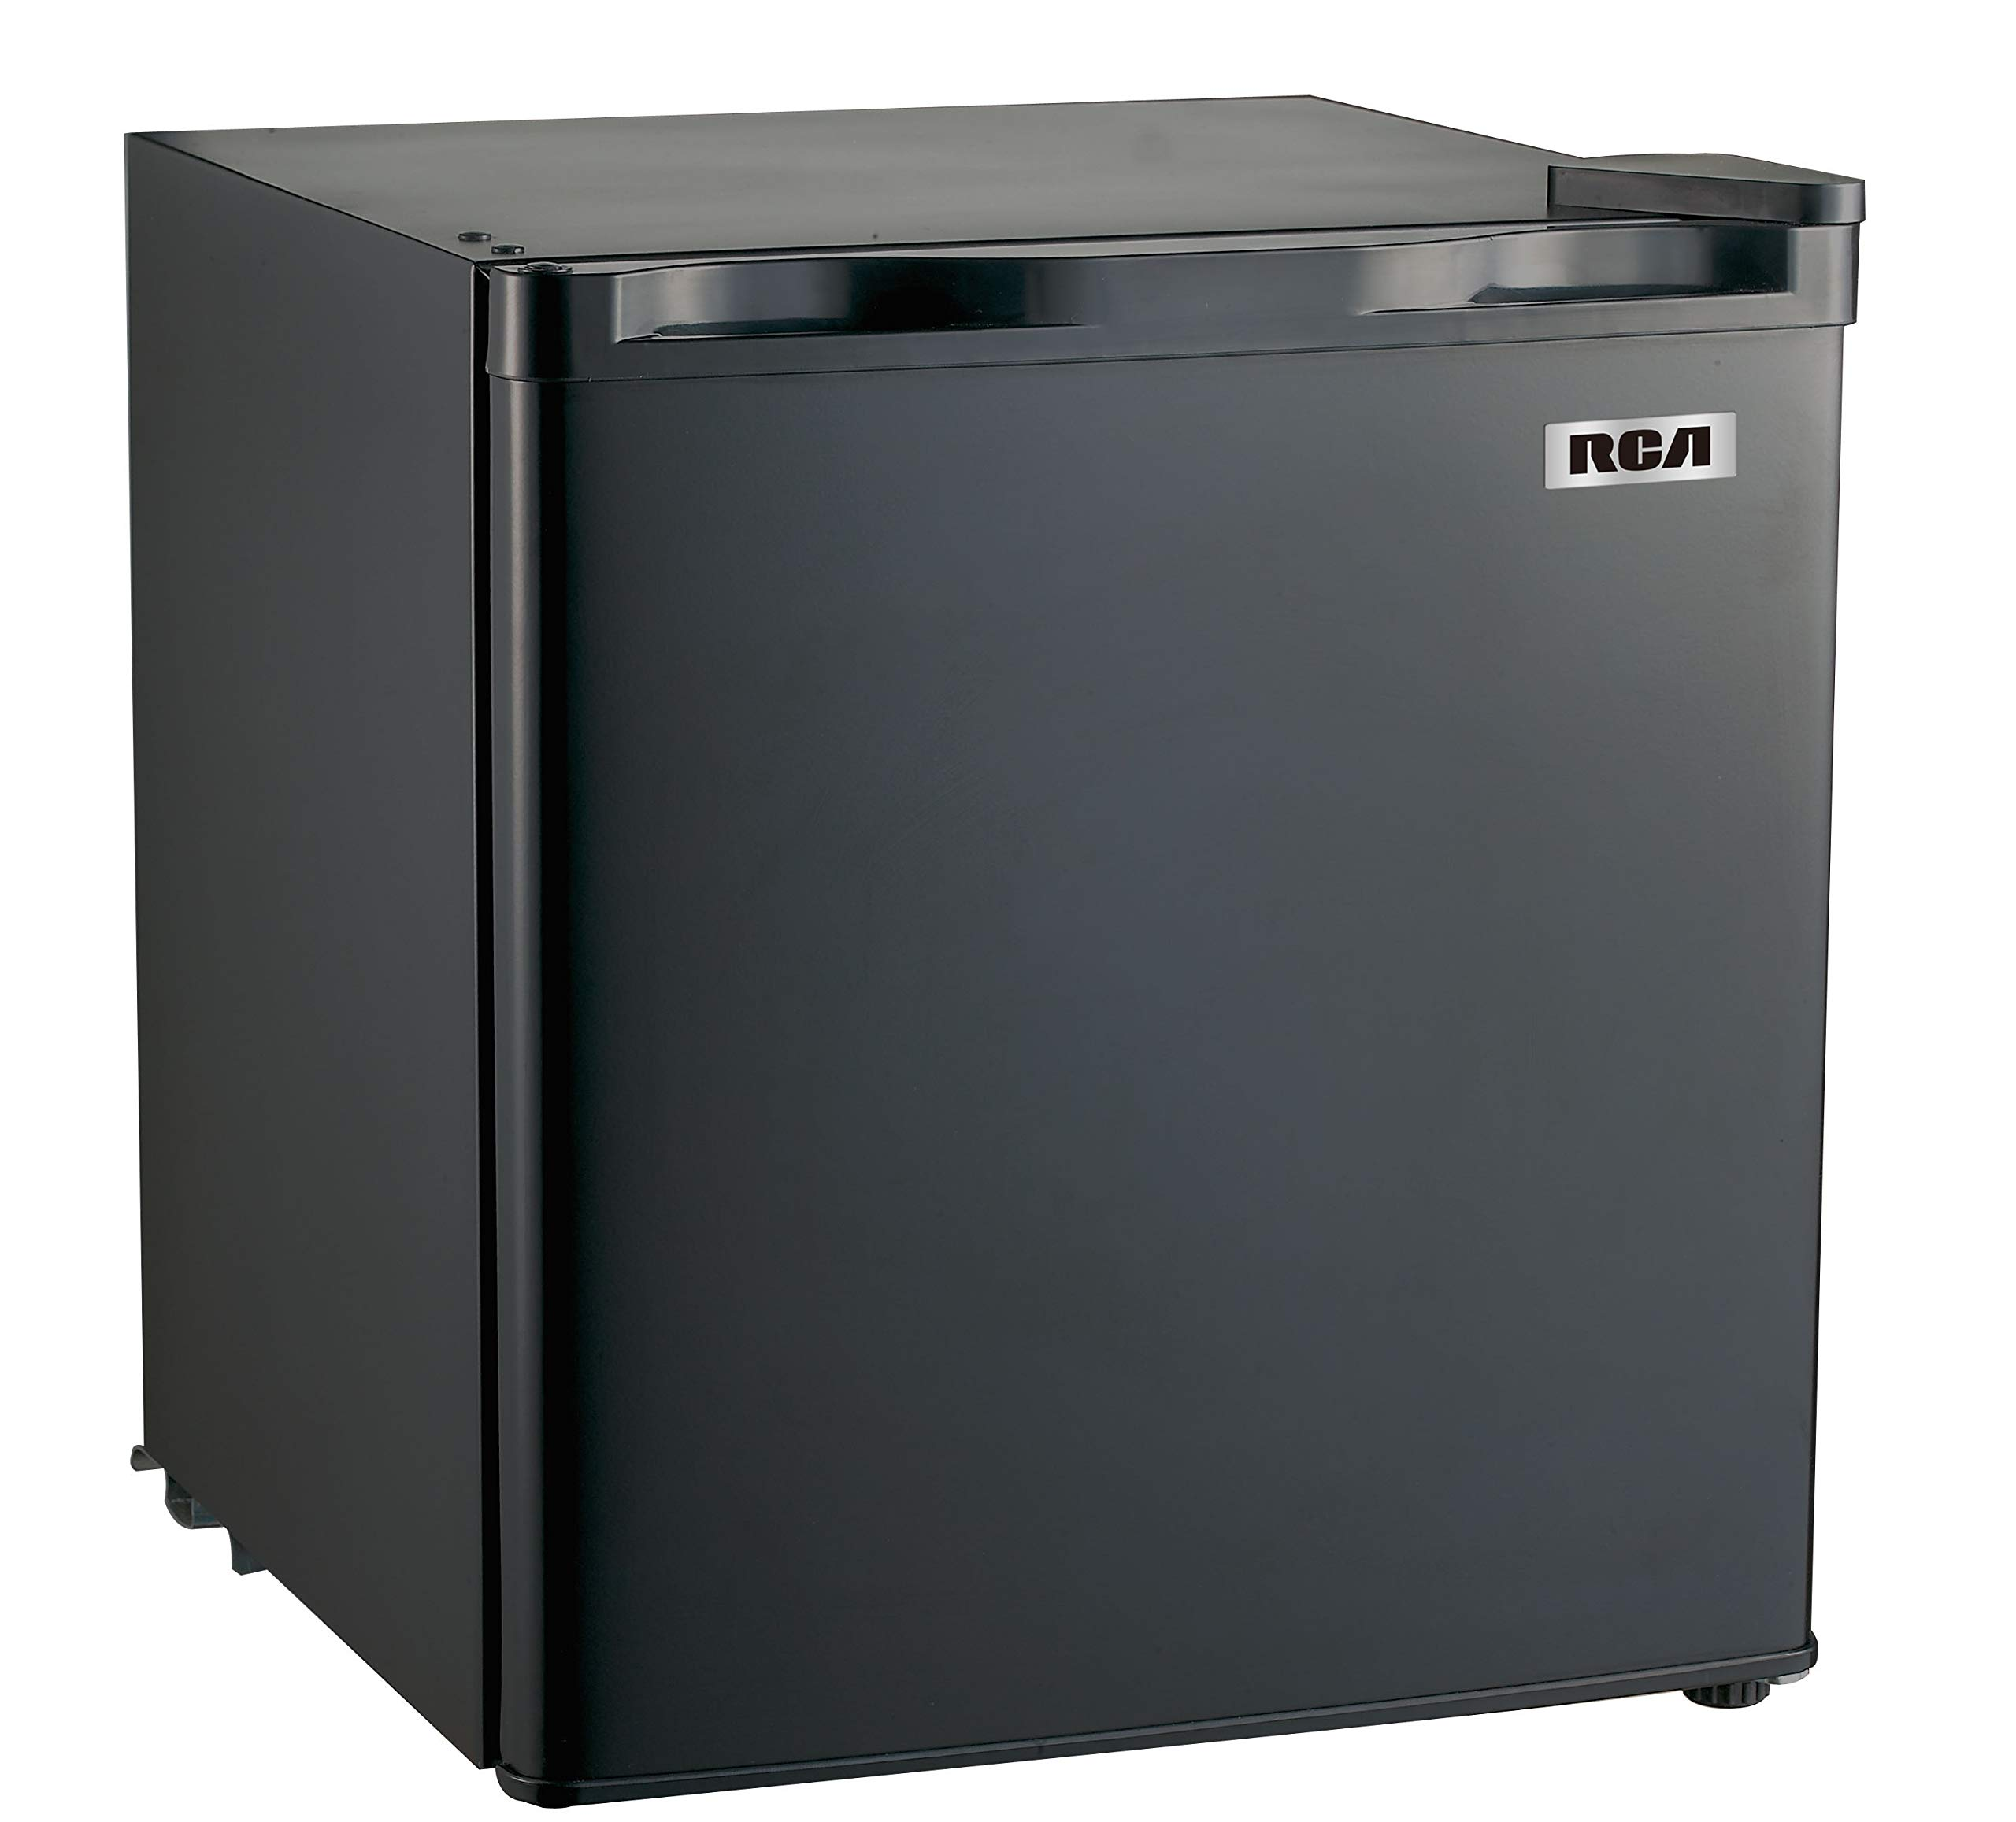 1 6 1 7 Cubic Foot Fridge Black